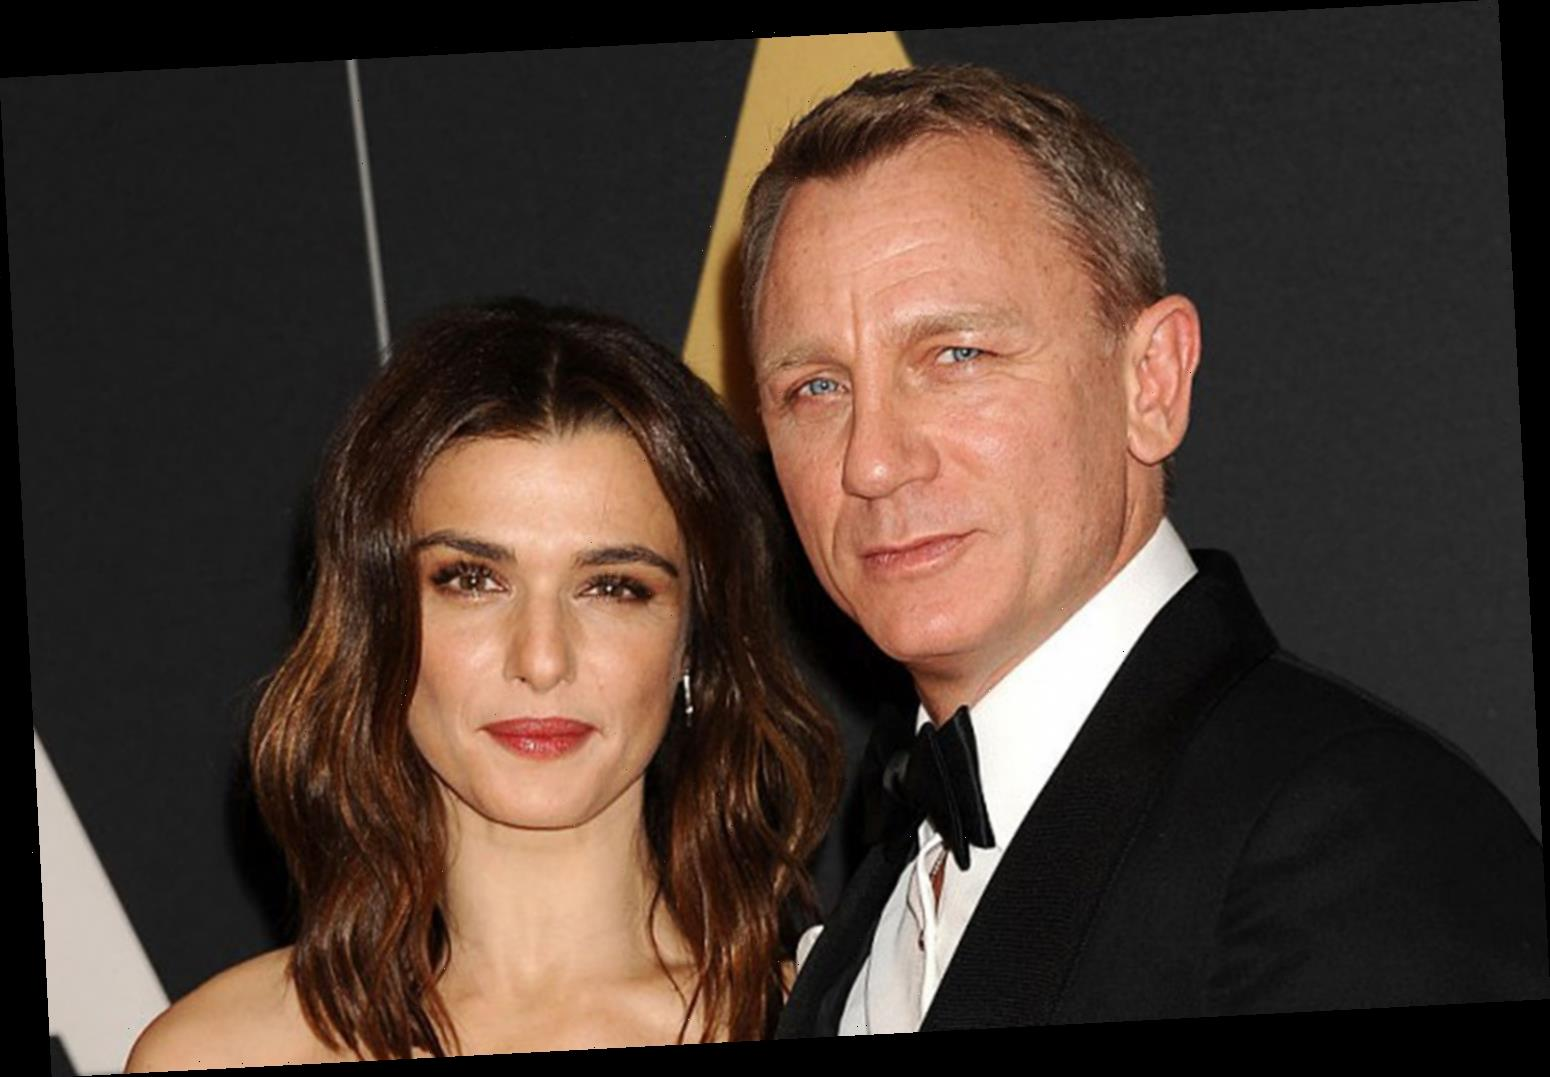 When did Daniel Craig and Rachel Weisz get married and how long have they been together?